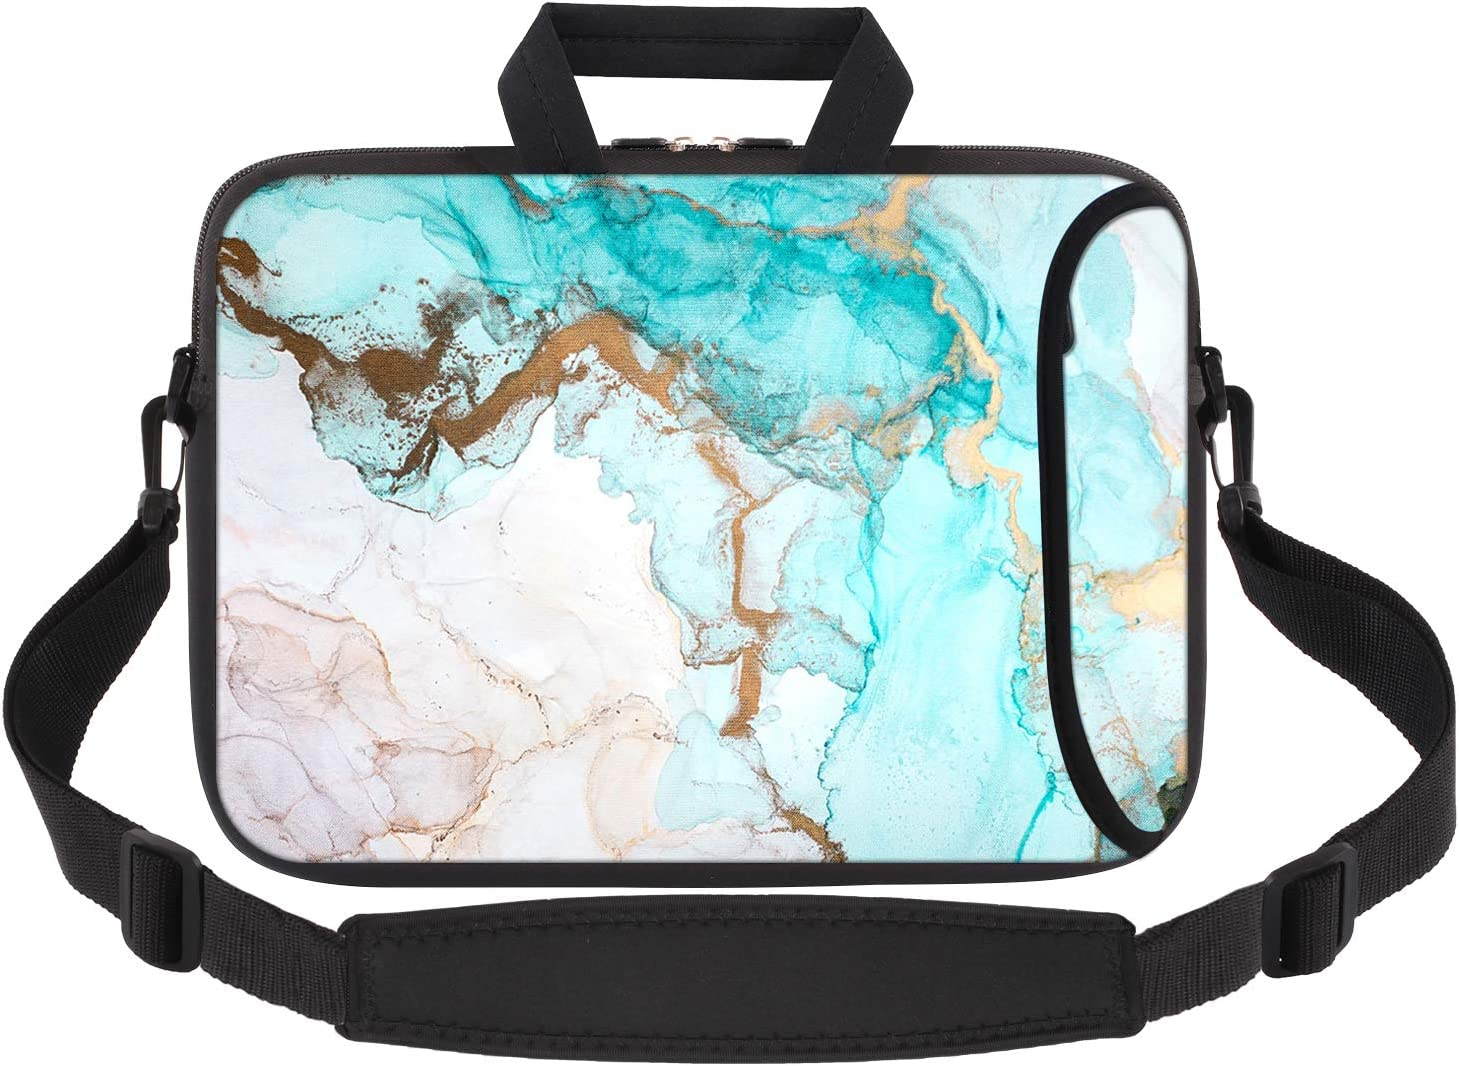 iCasso Laptop Sleeve 11.6-12.1 Soft Challenge the lowest price of Japan ☆ Max 78% OFF Inch Neoprene Stylish